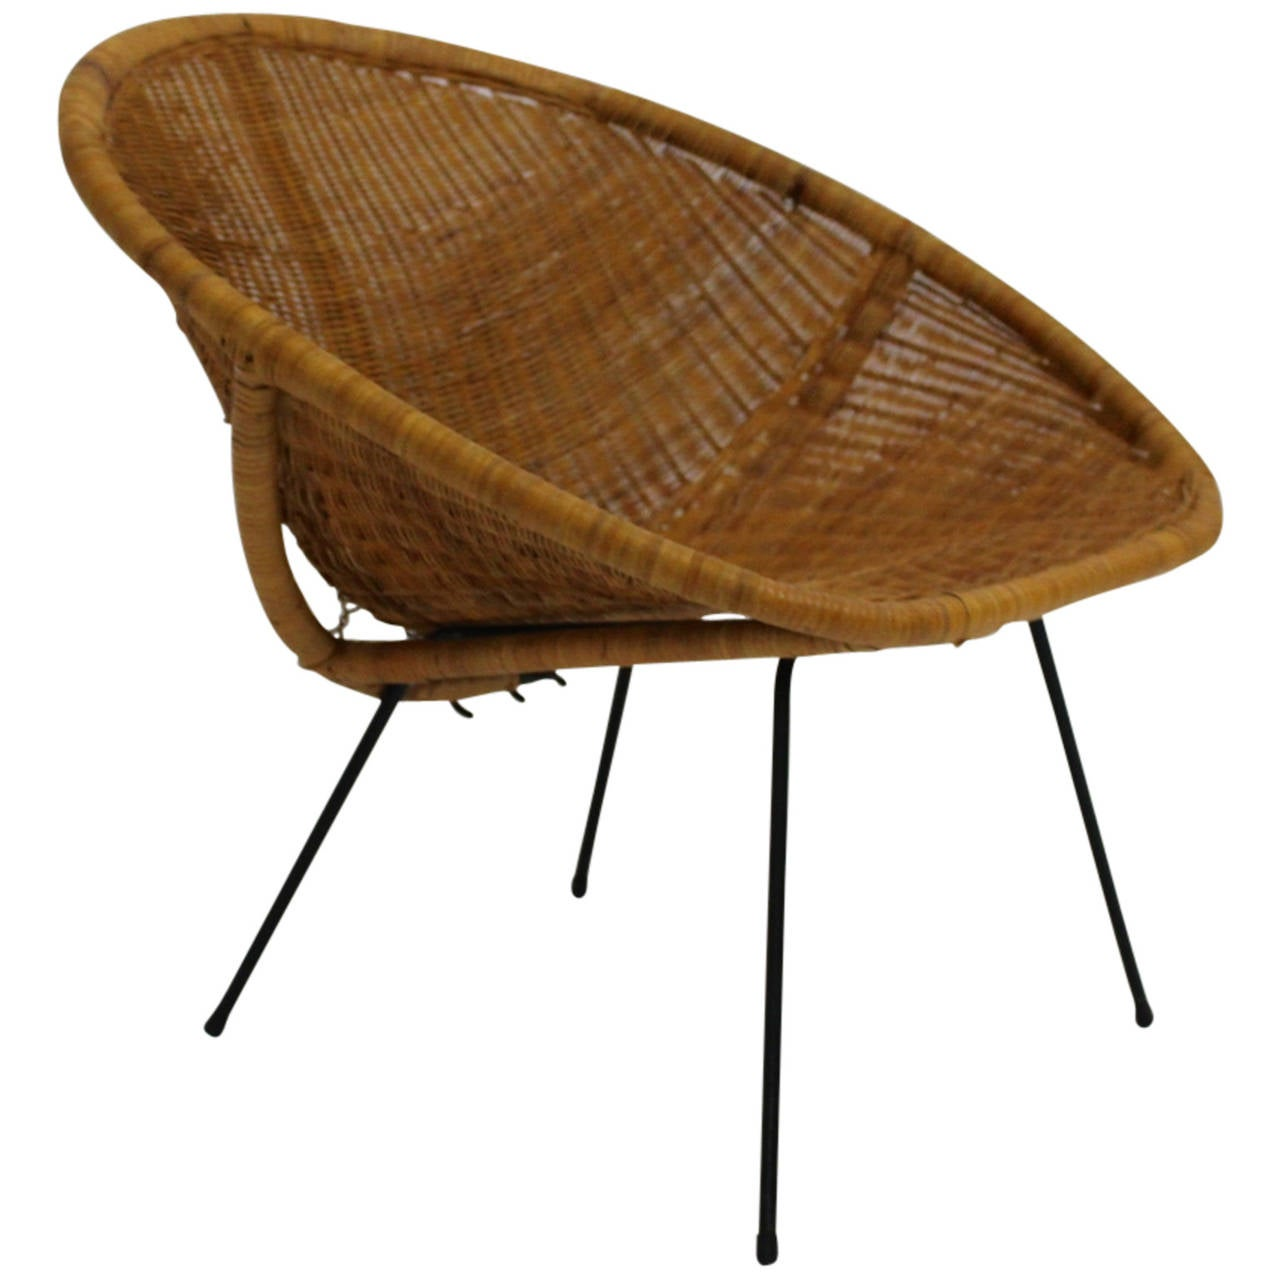 Rattan Club Chair France 1950s